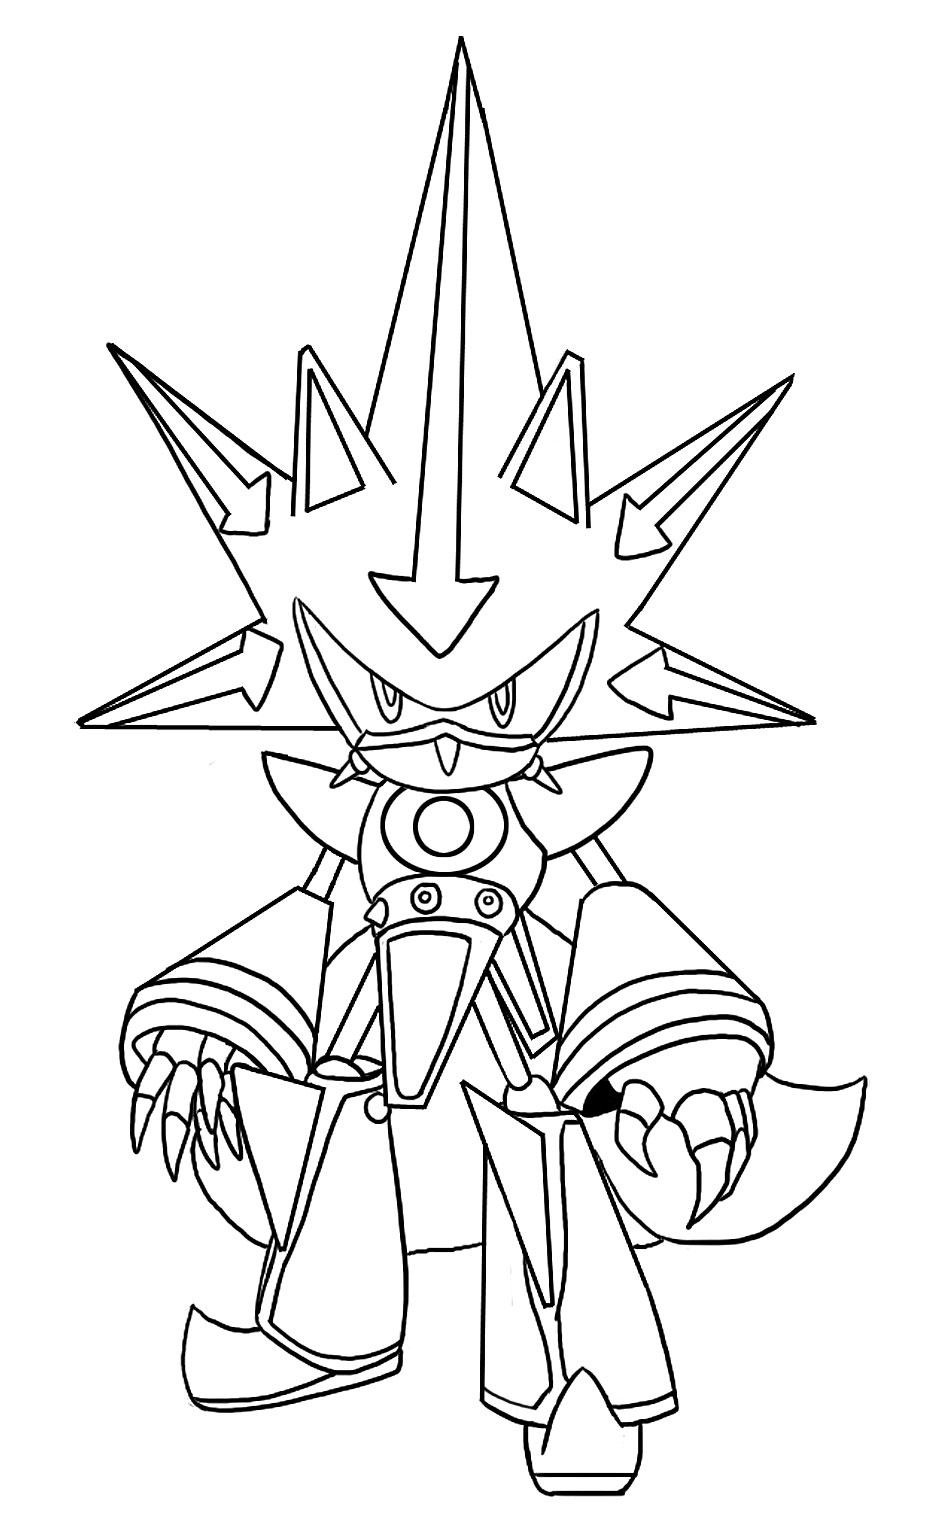 sonic printable free printable sonic the hedgehog coloring pages for kids sonic printable 1 1